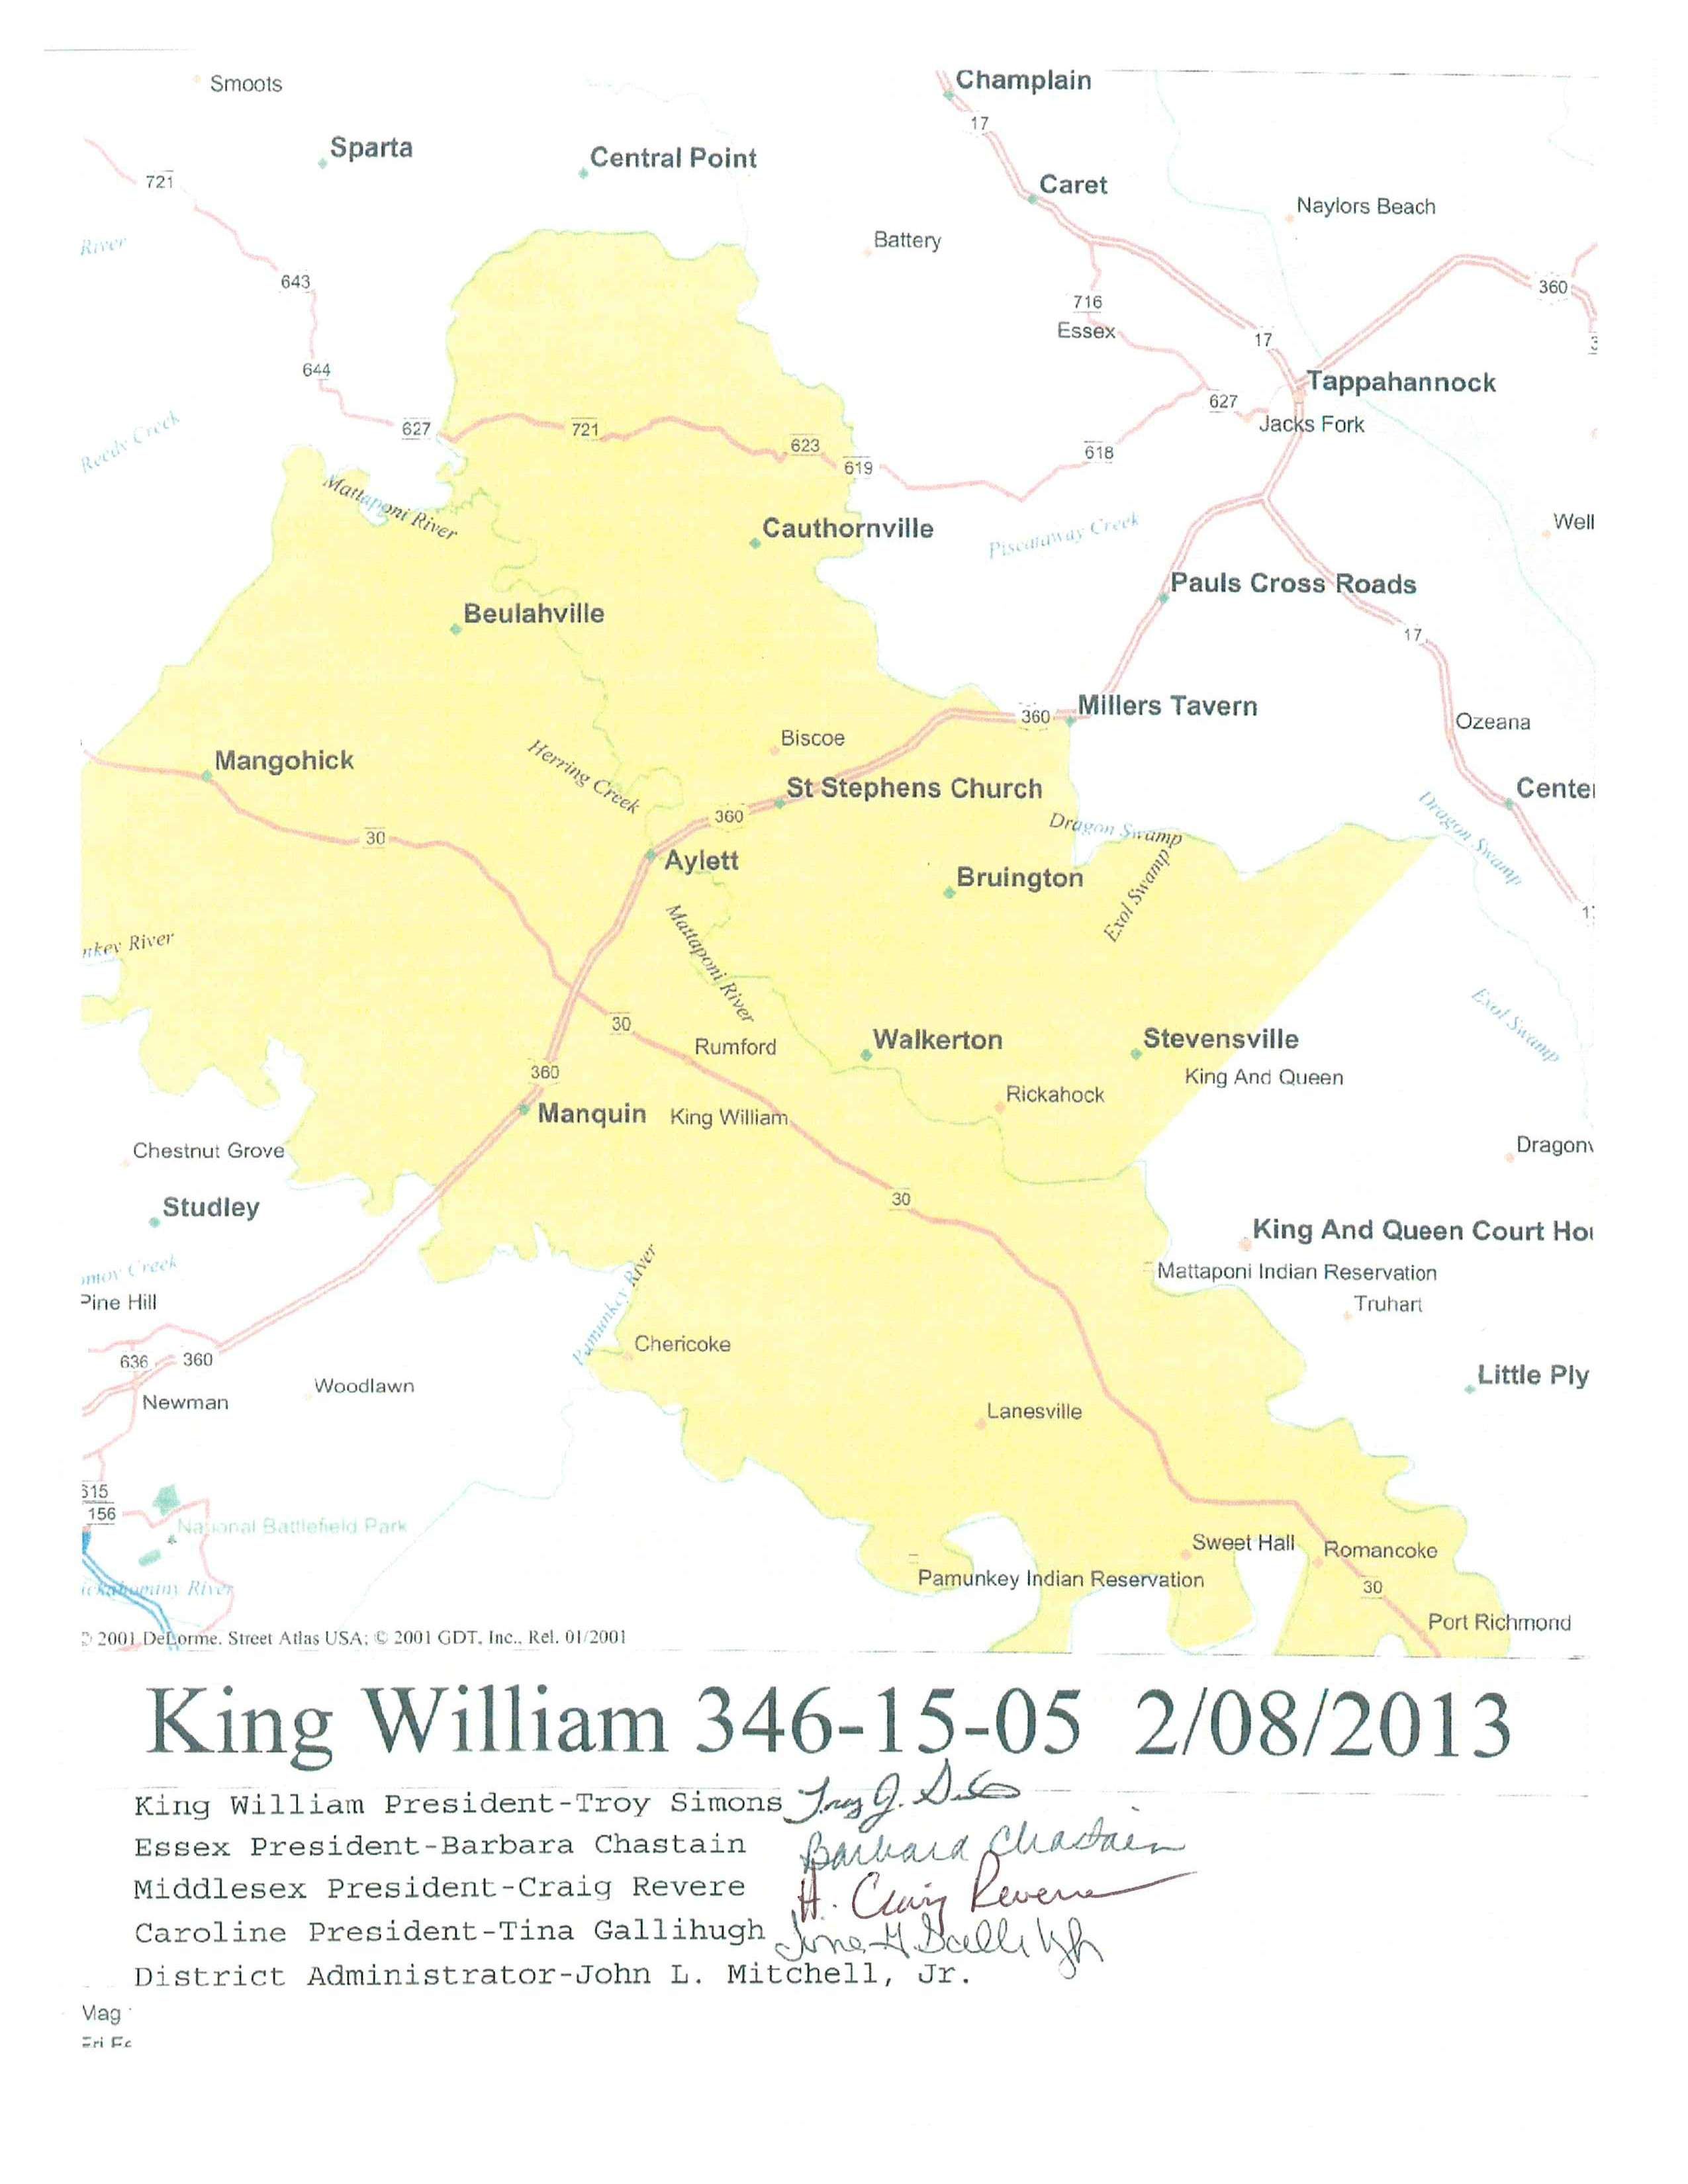 2013-King William.jpg